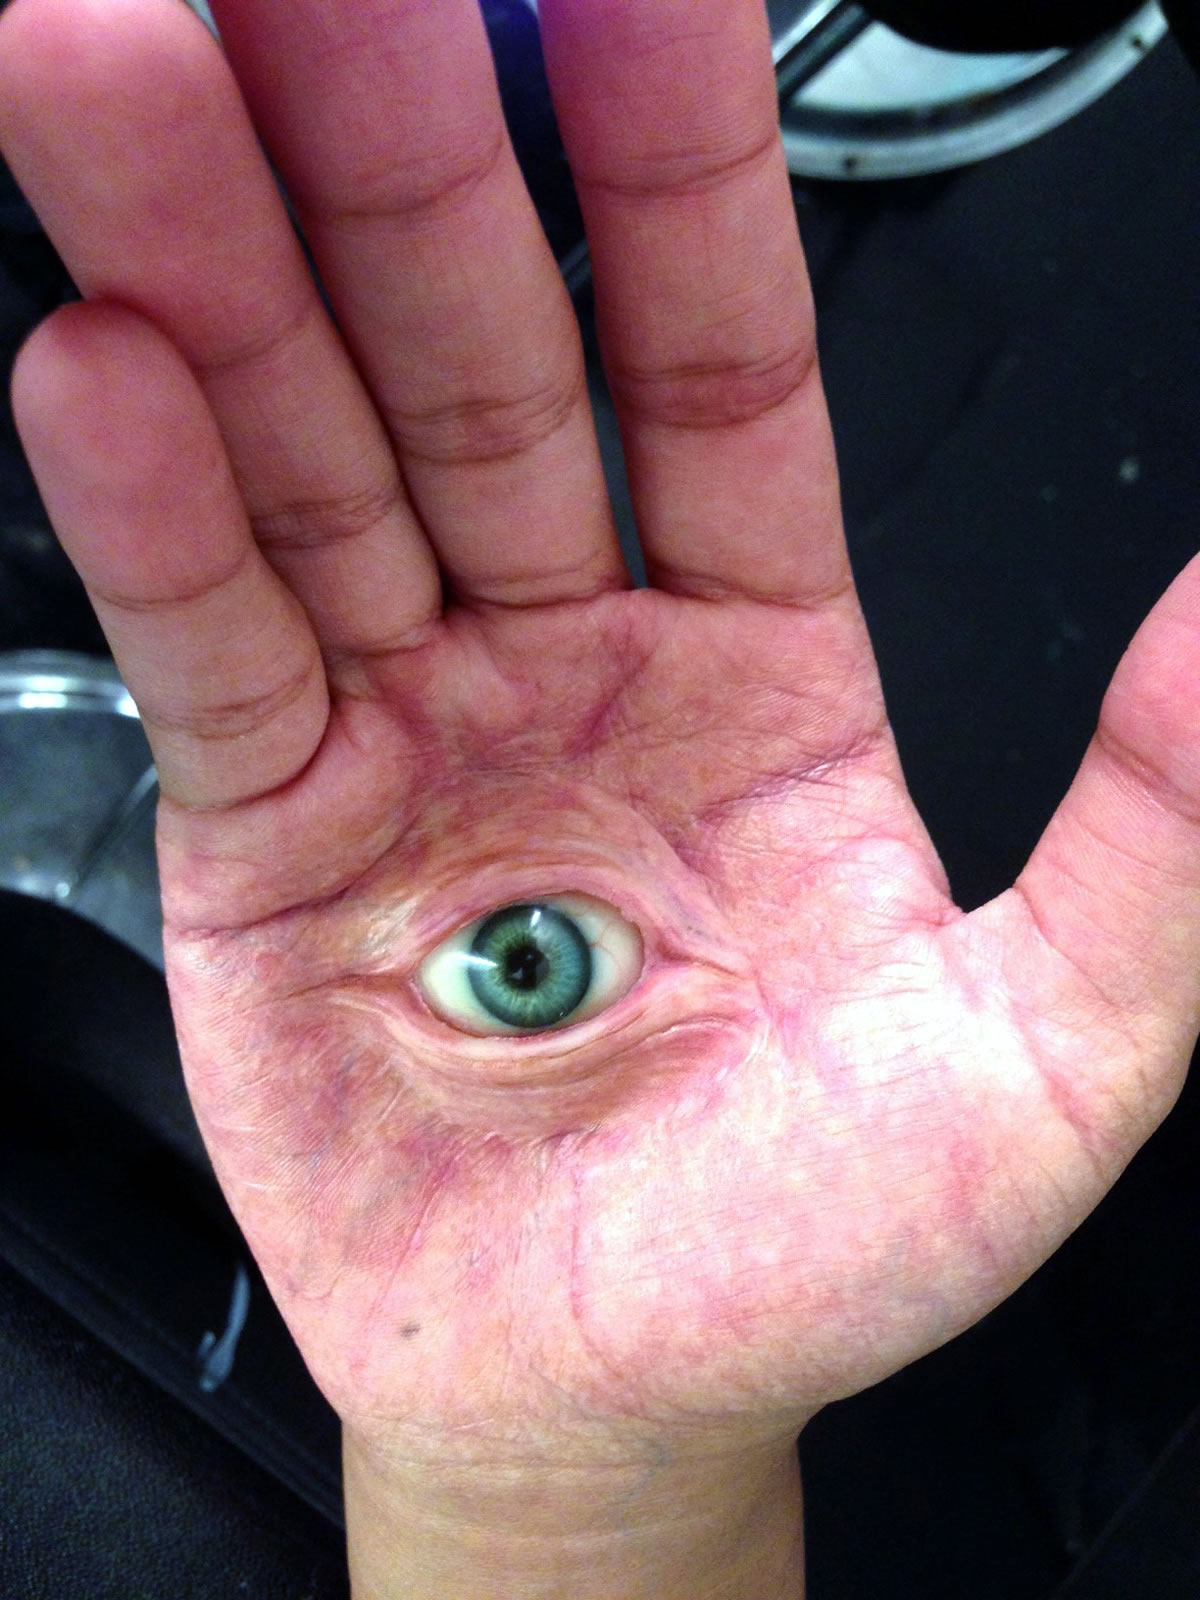 Eye in hand appliance for the Disney series 'Mighty Med'